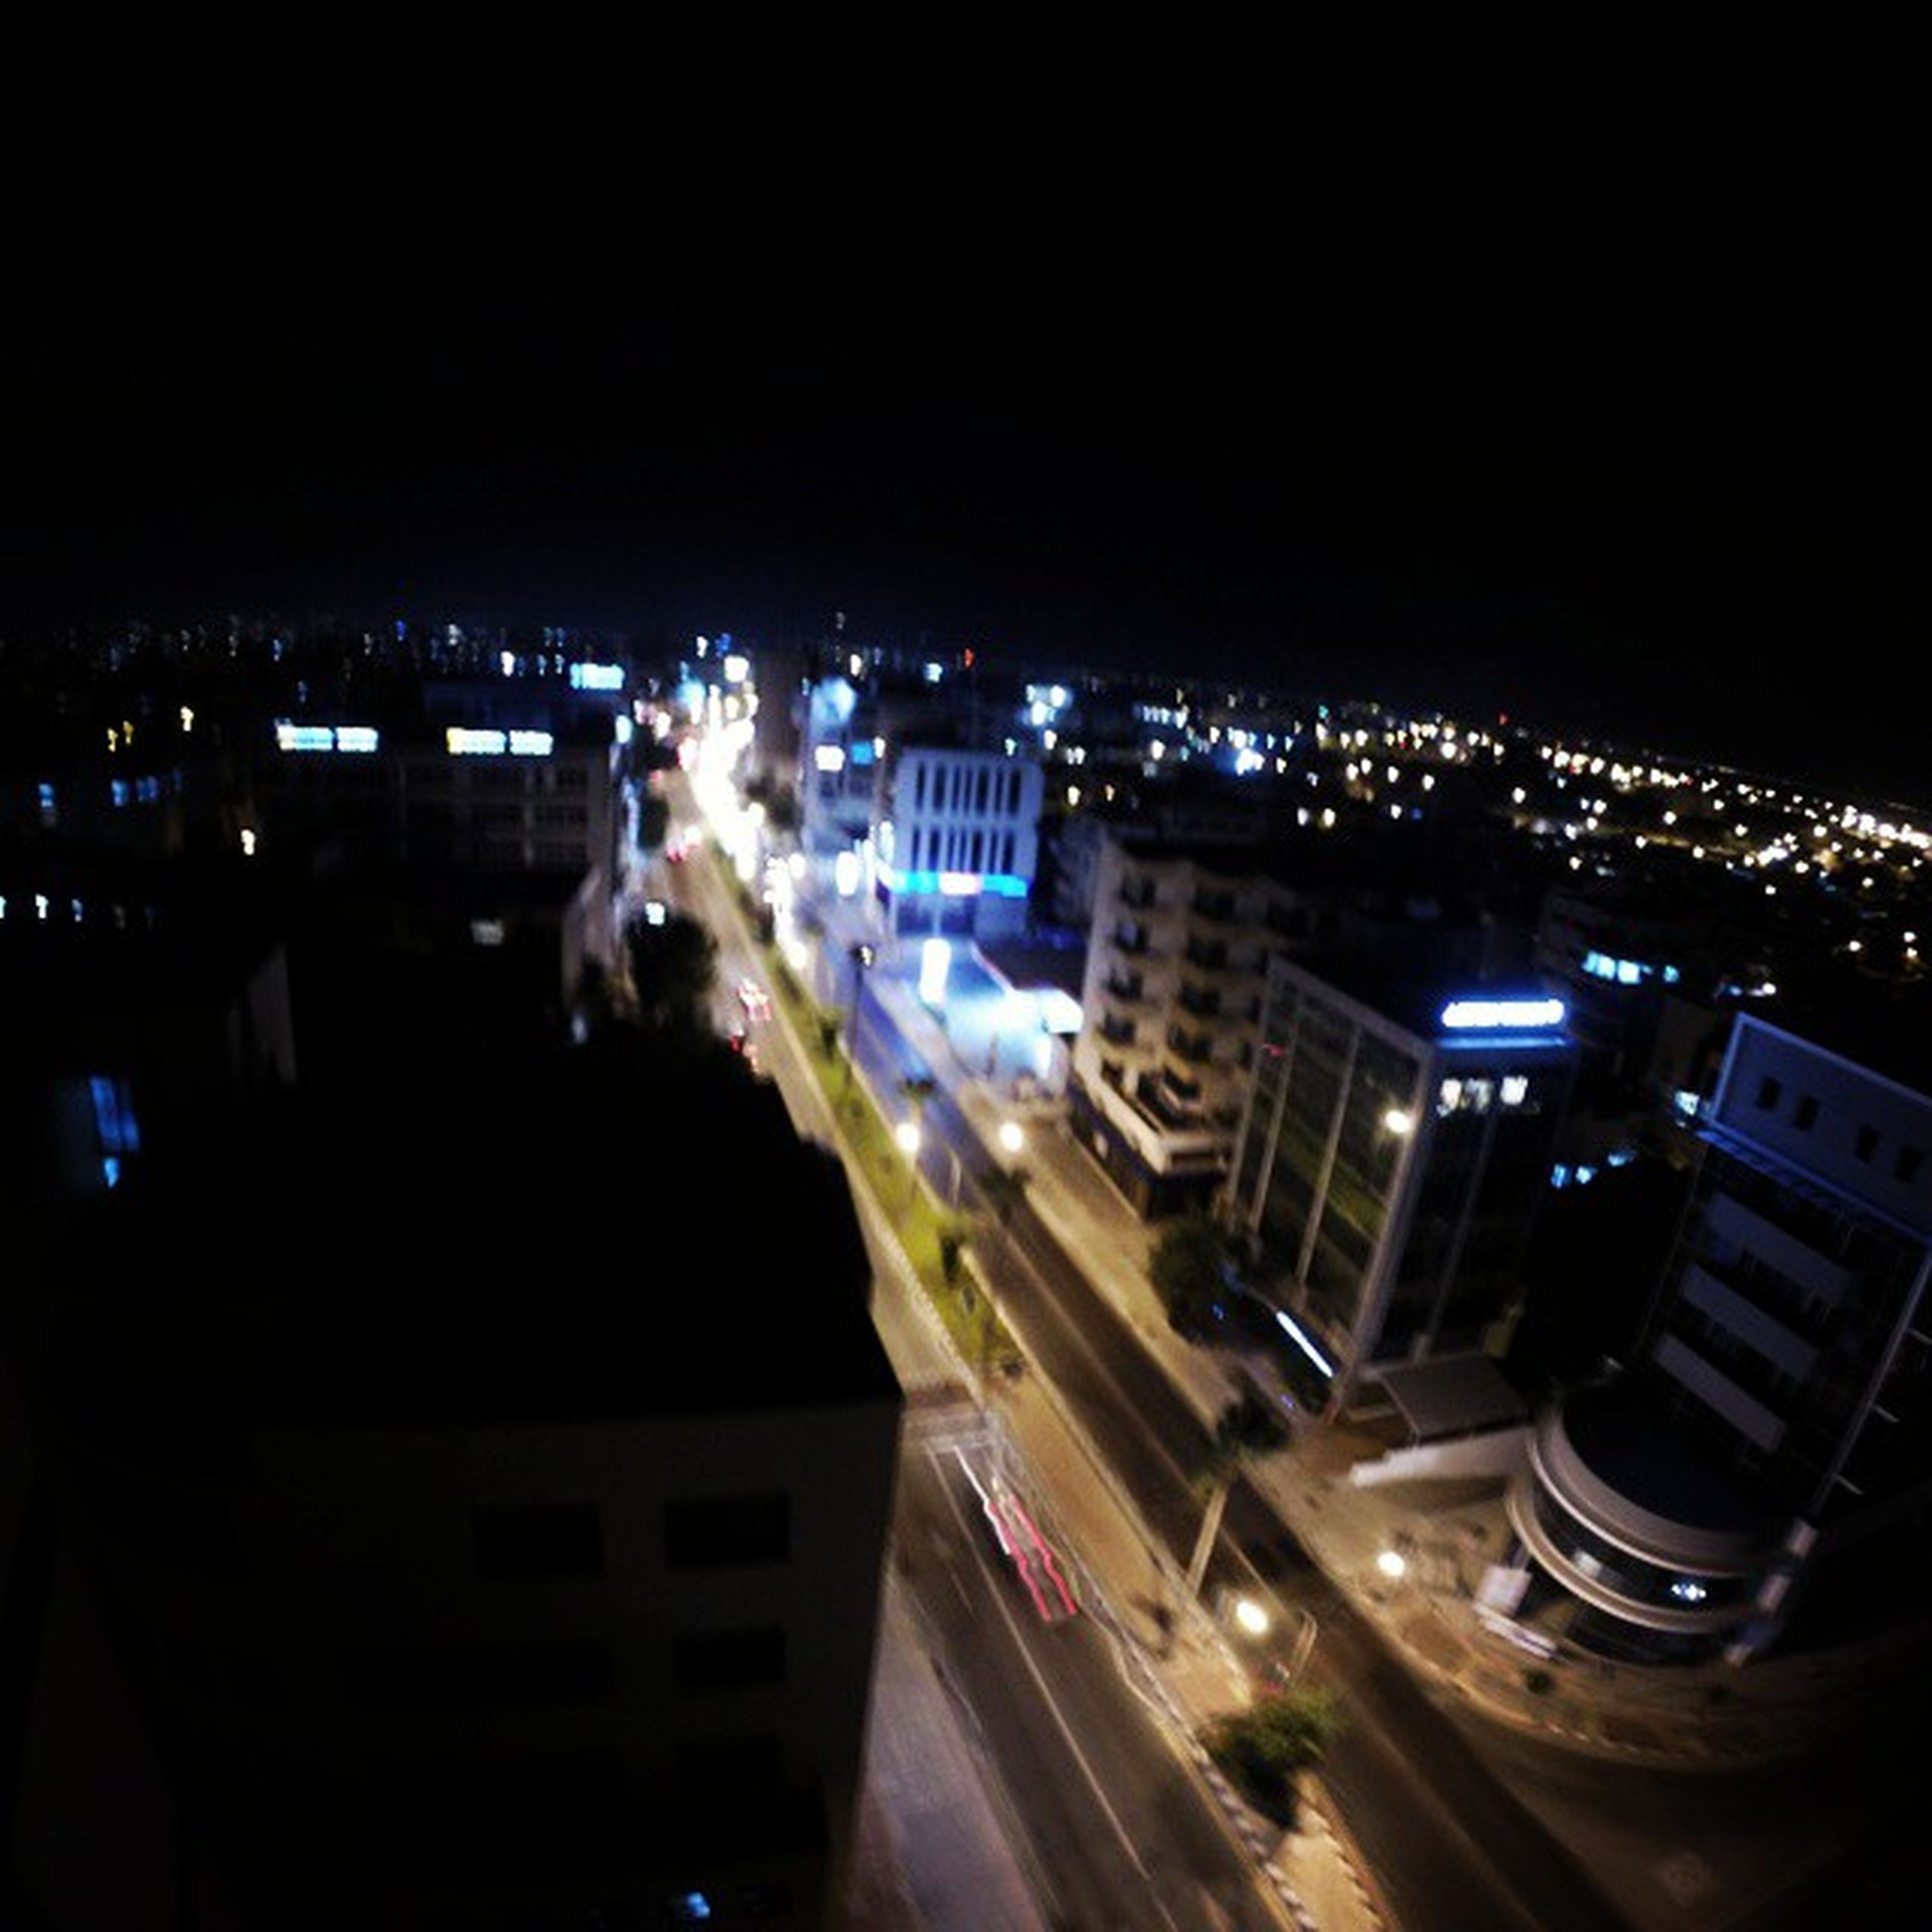 night, illuminated, building exterior, city, architecture, built structure, high angle view, street, transportation, car, cityscape, road, city life, land vehicle, city street, traffic, copy space, dark, clear sky, mode of transport